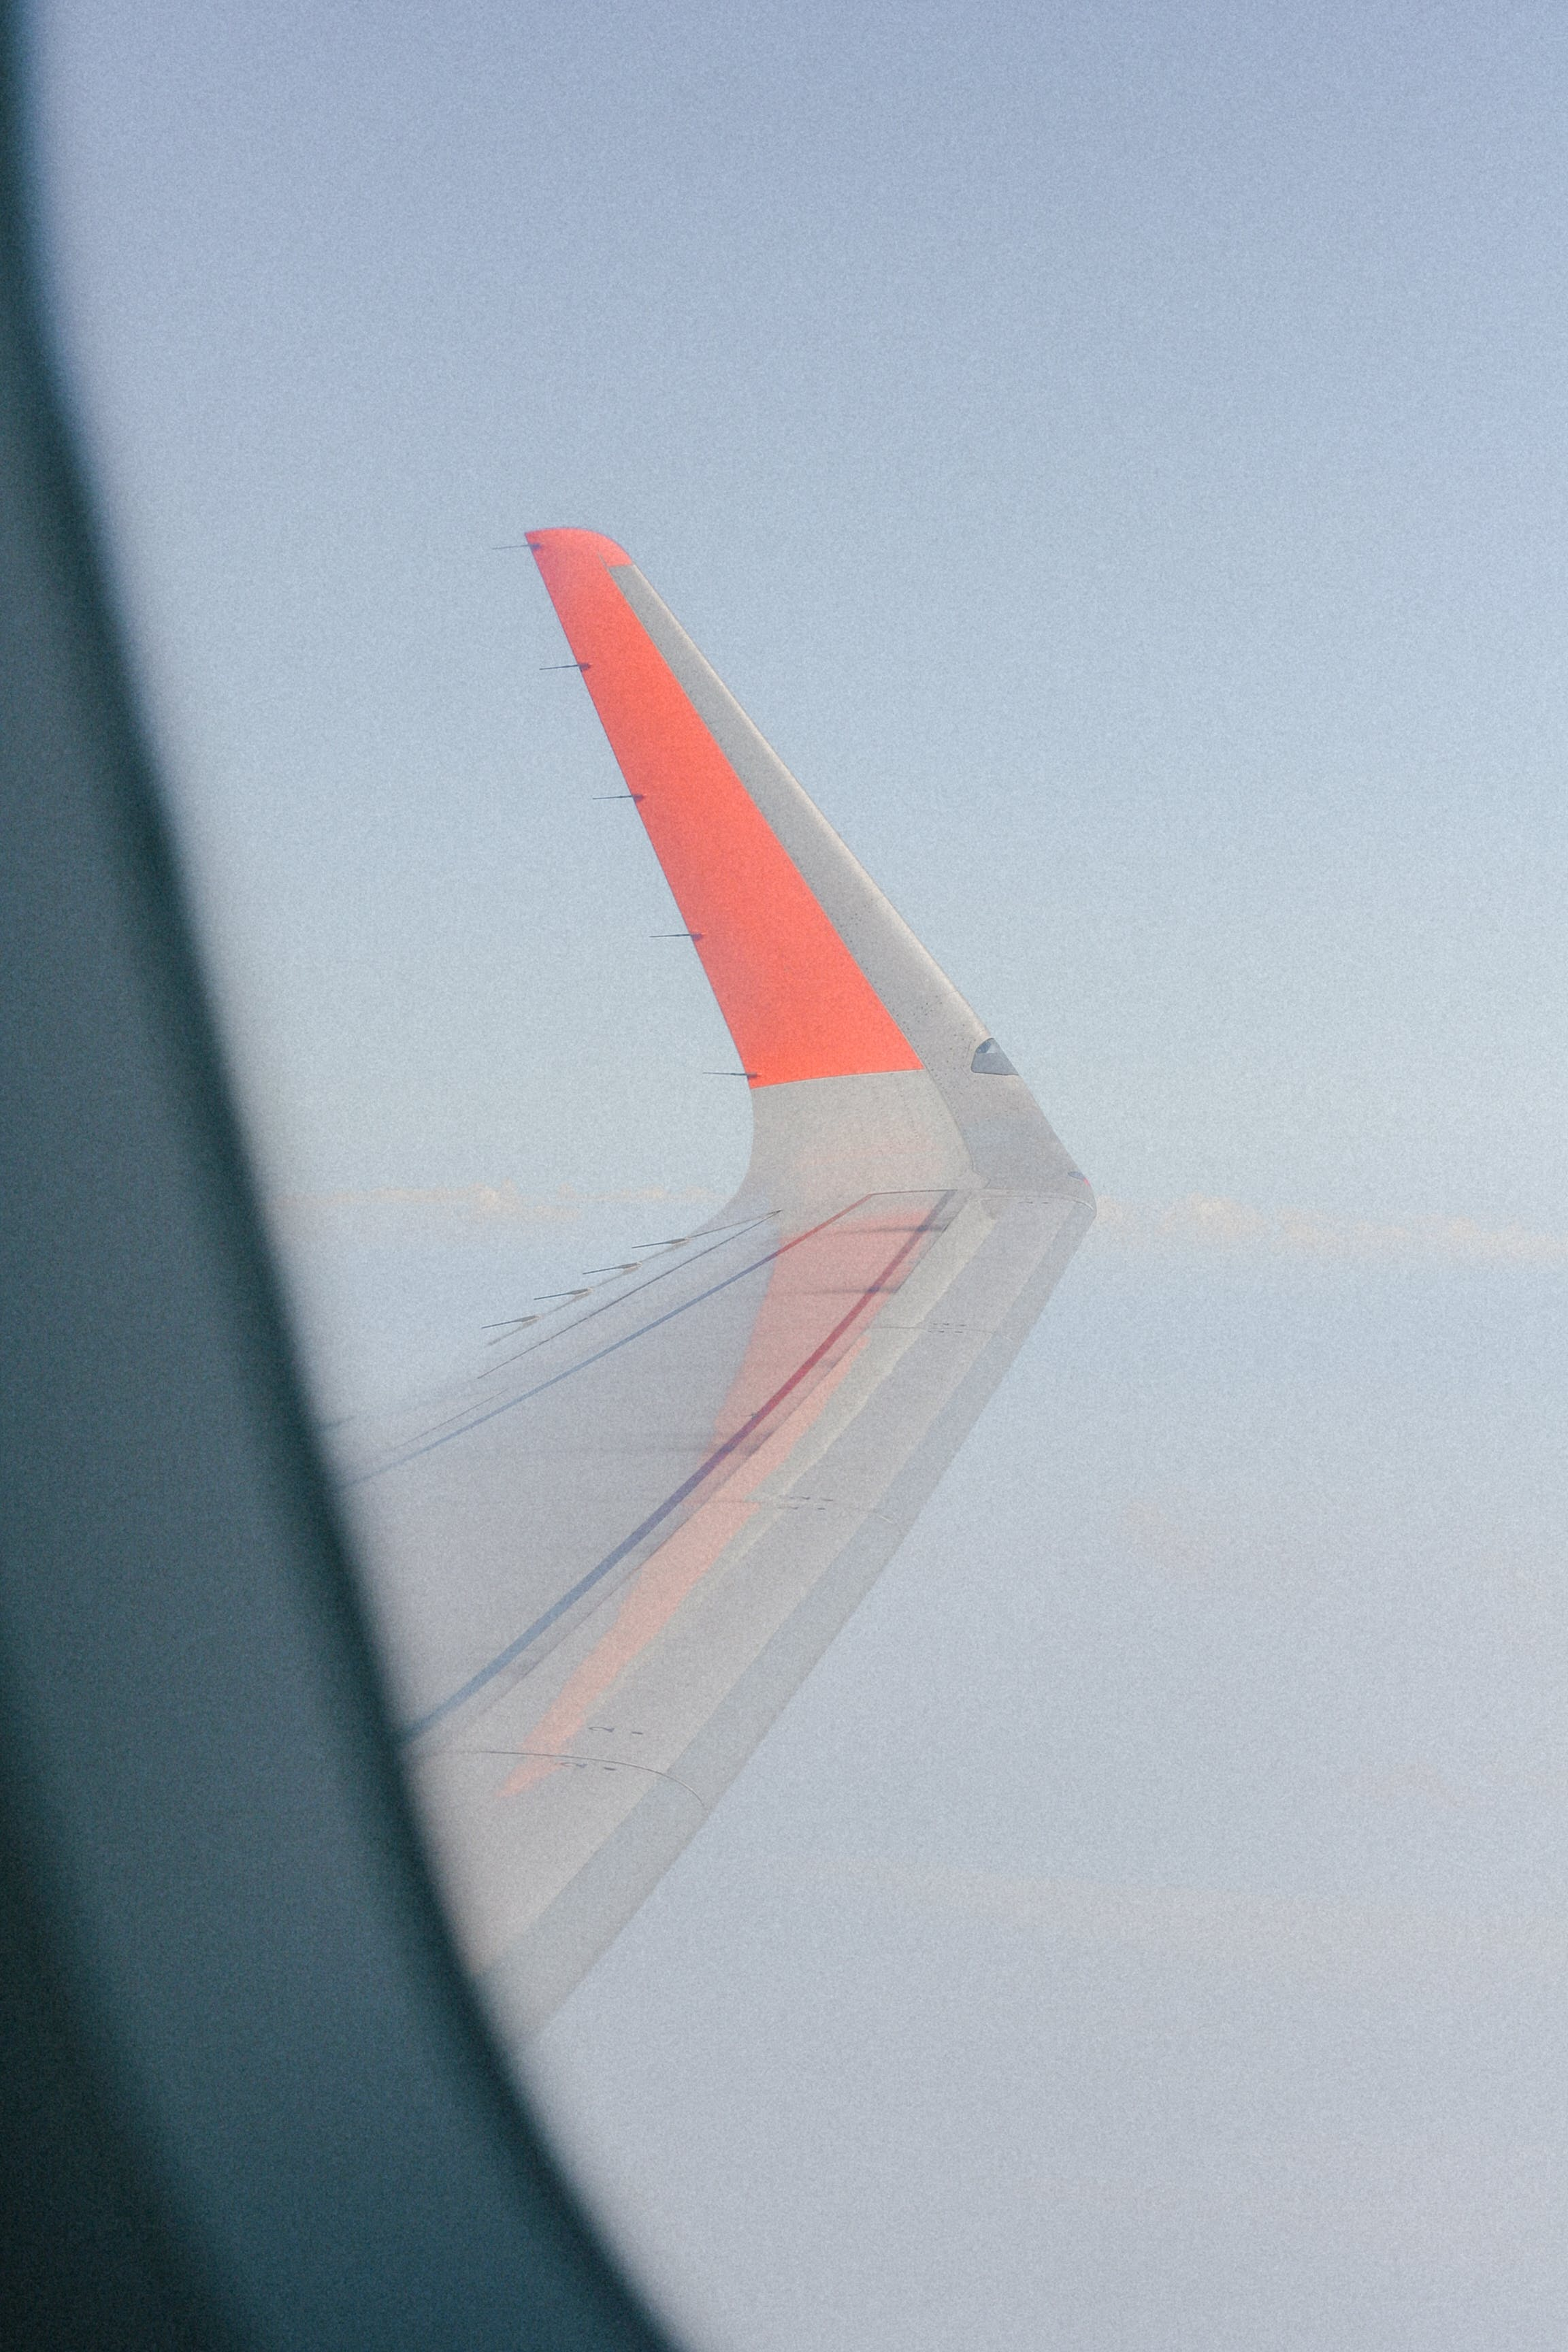 Aerial Photography of Plane Wings